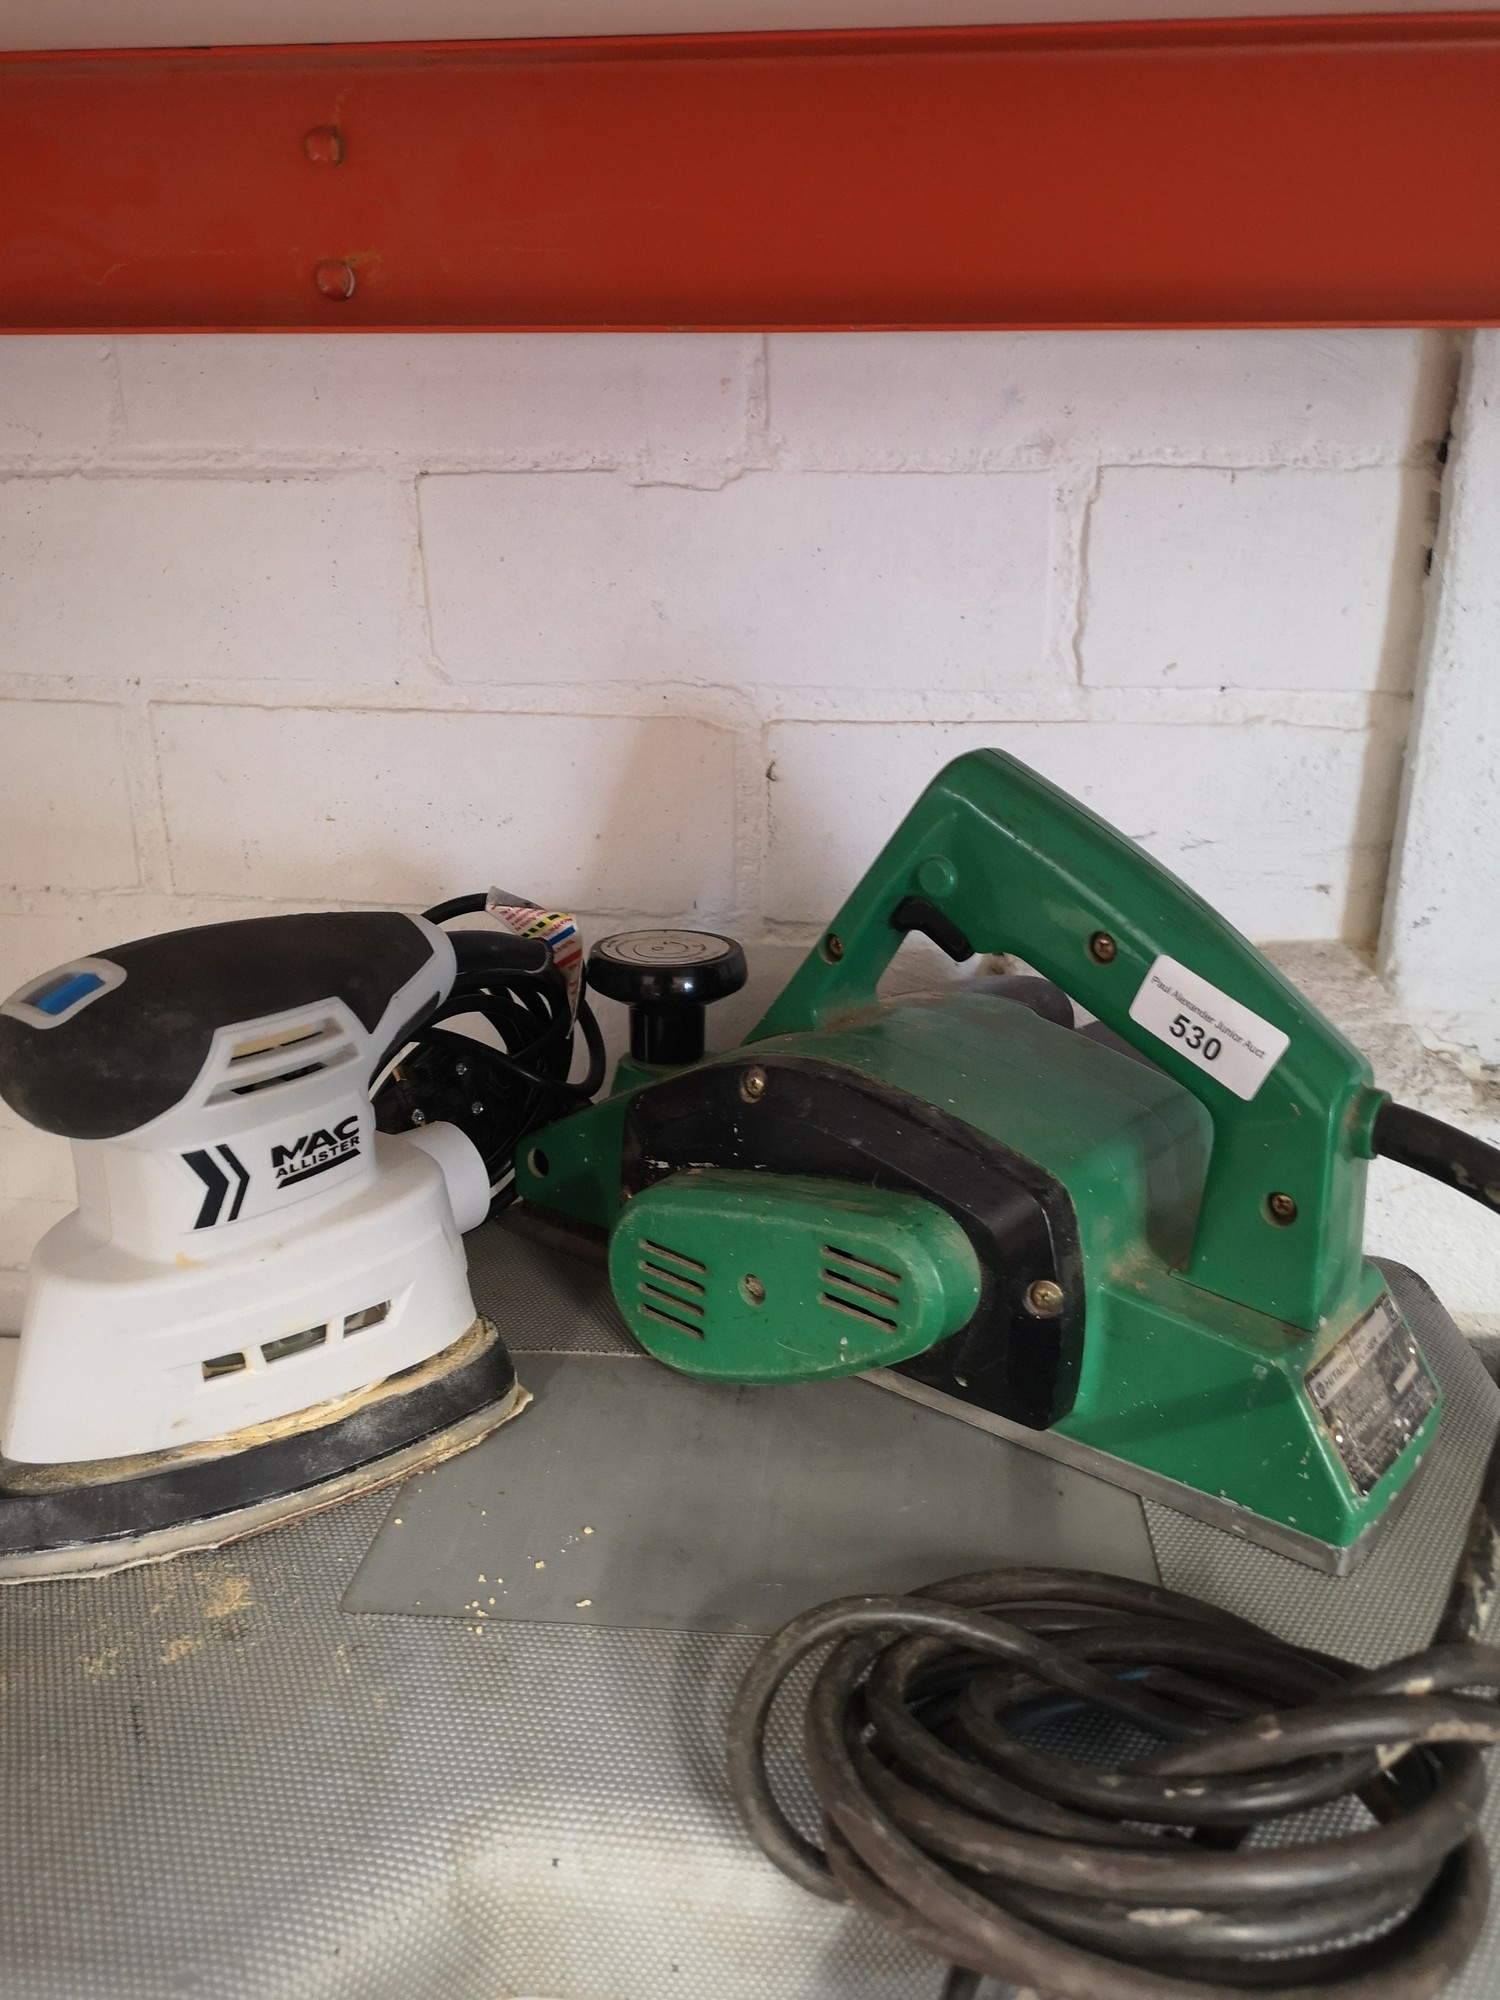 Heavy duty electric planer together with mac allister sander.